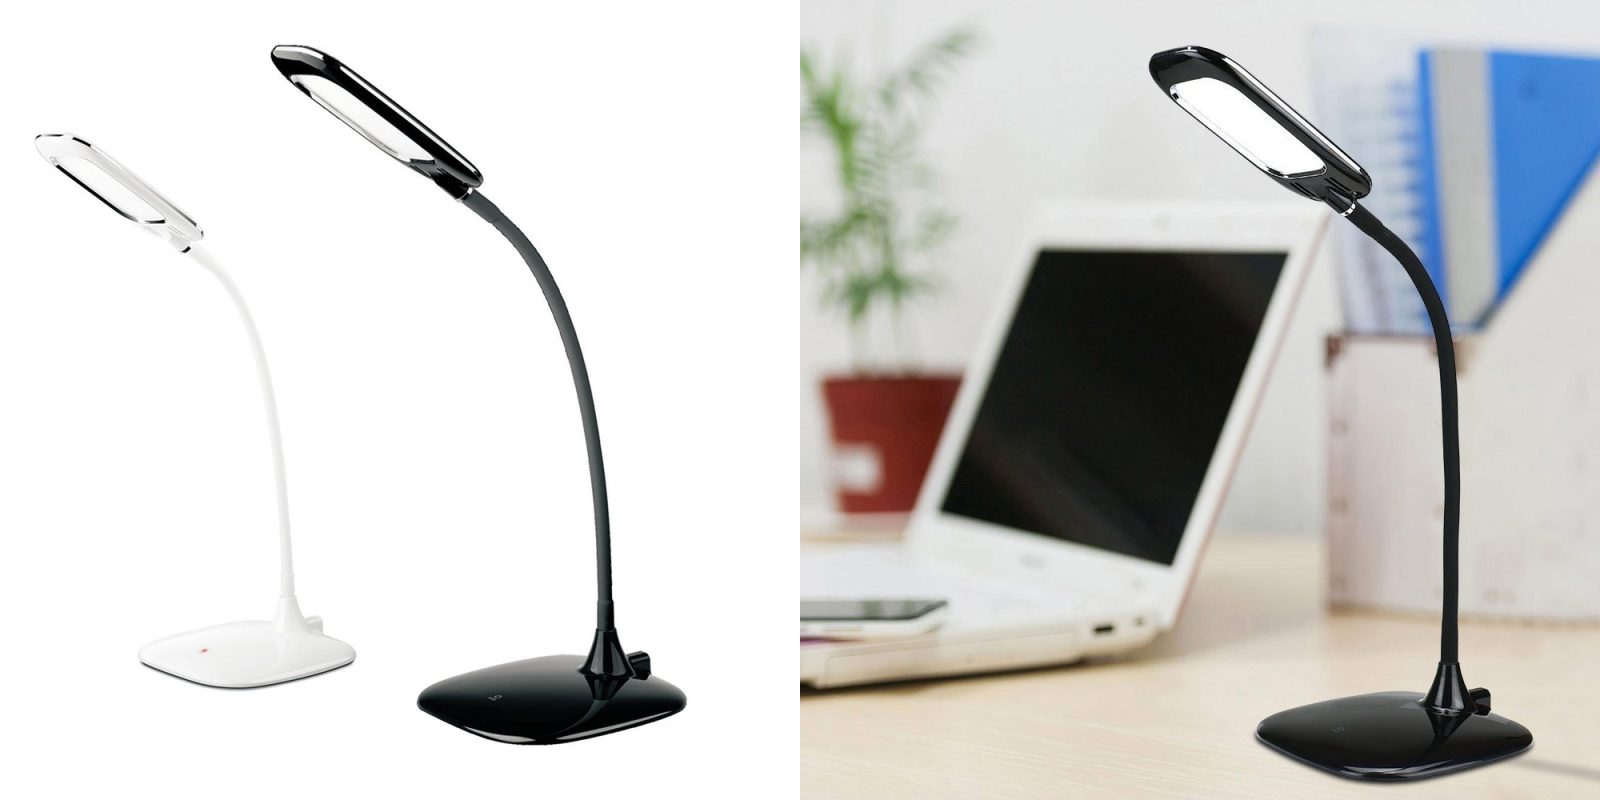 OxyLED Wireless Dimmable Desk Lamp for only $12 Prime shipped (Reg ...